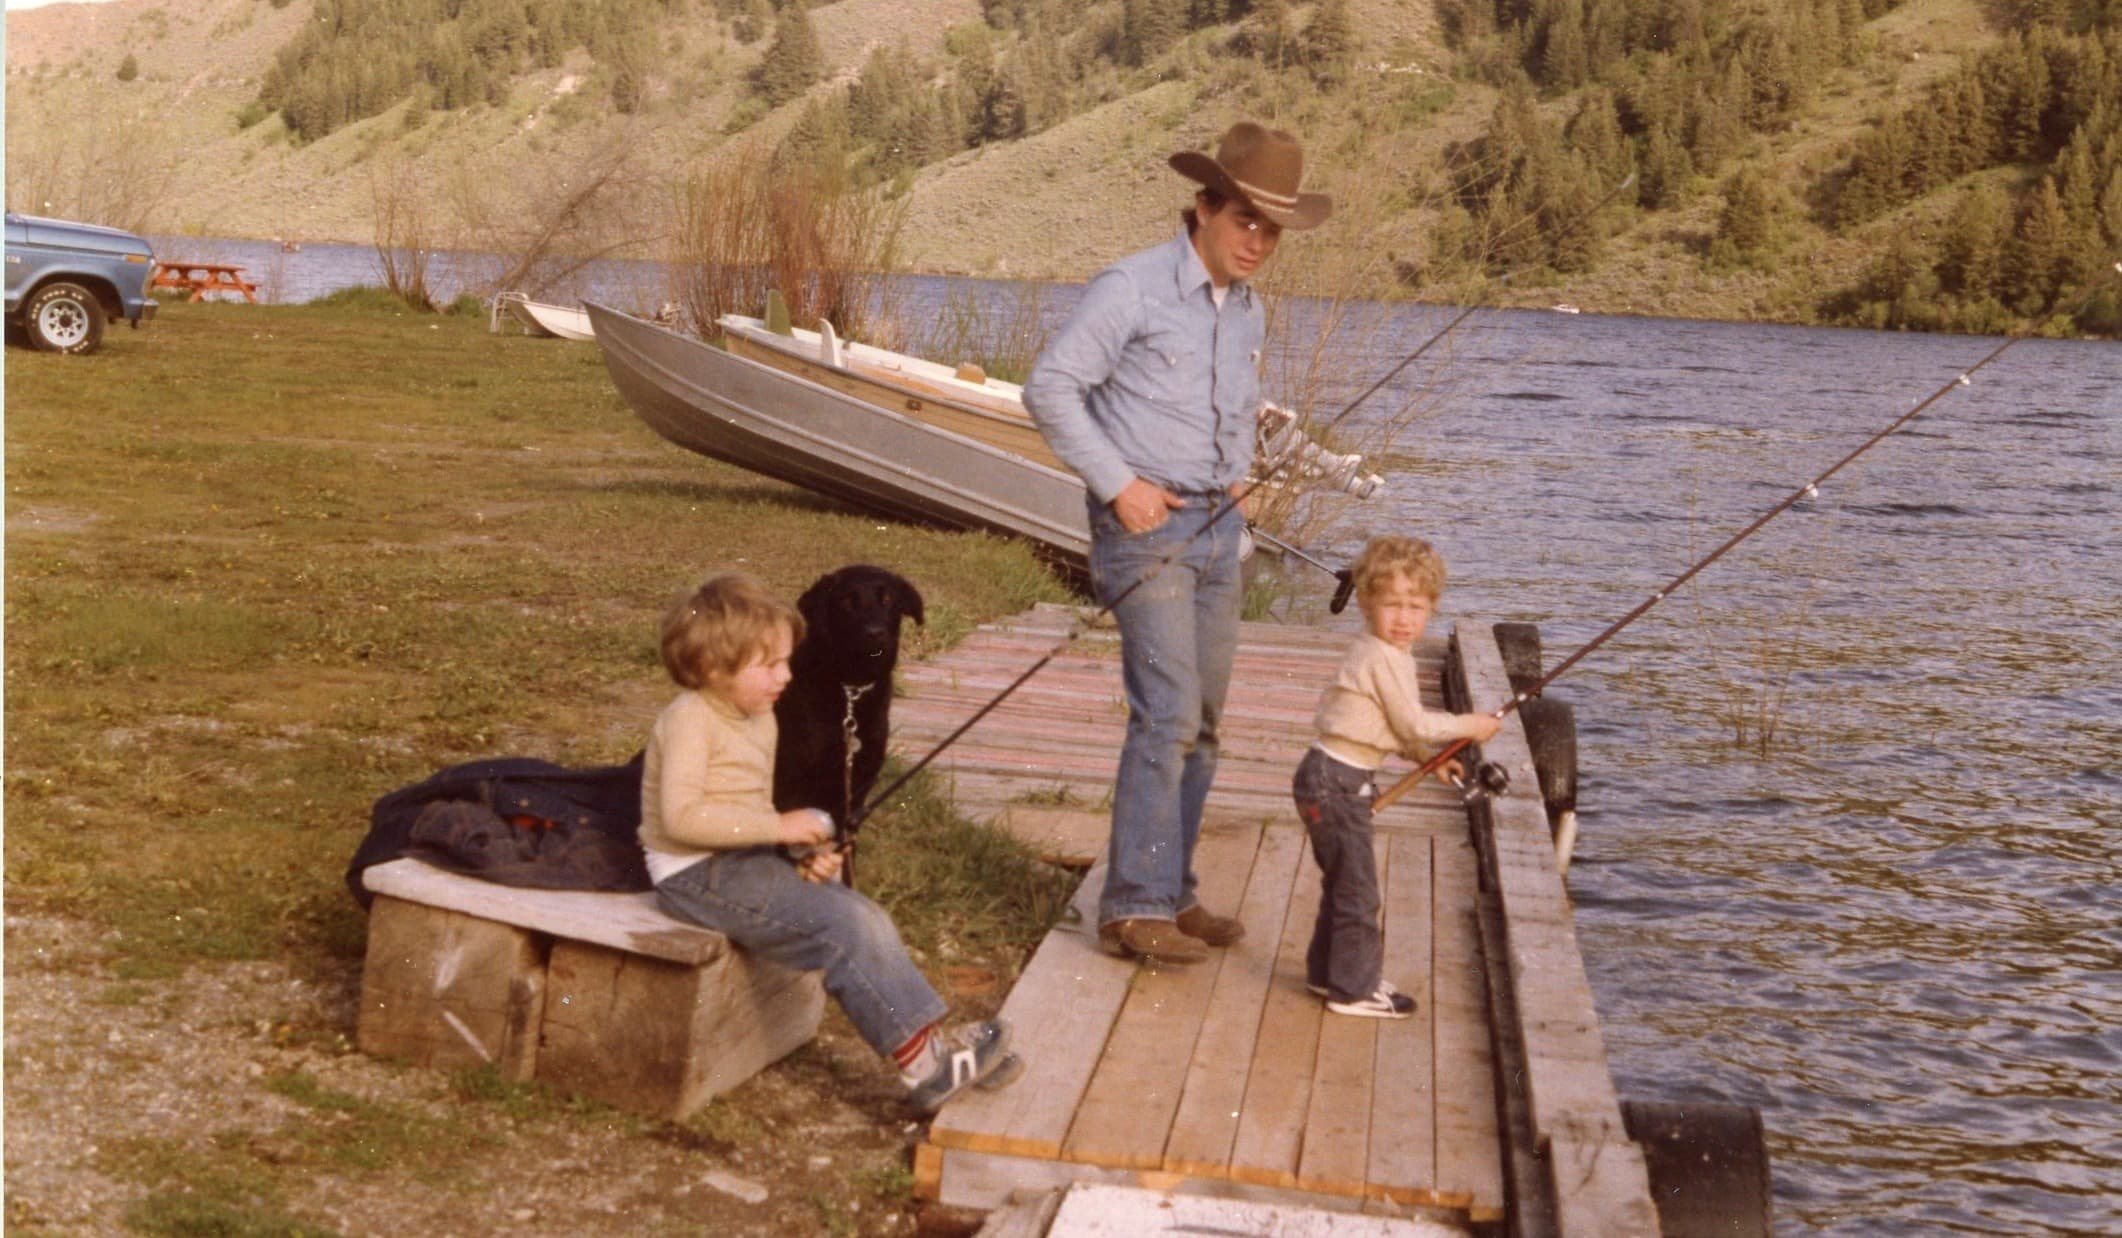 Danny, his Brother Spencer and their Dad on their first fishing trip ever!